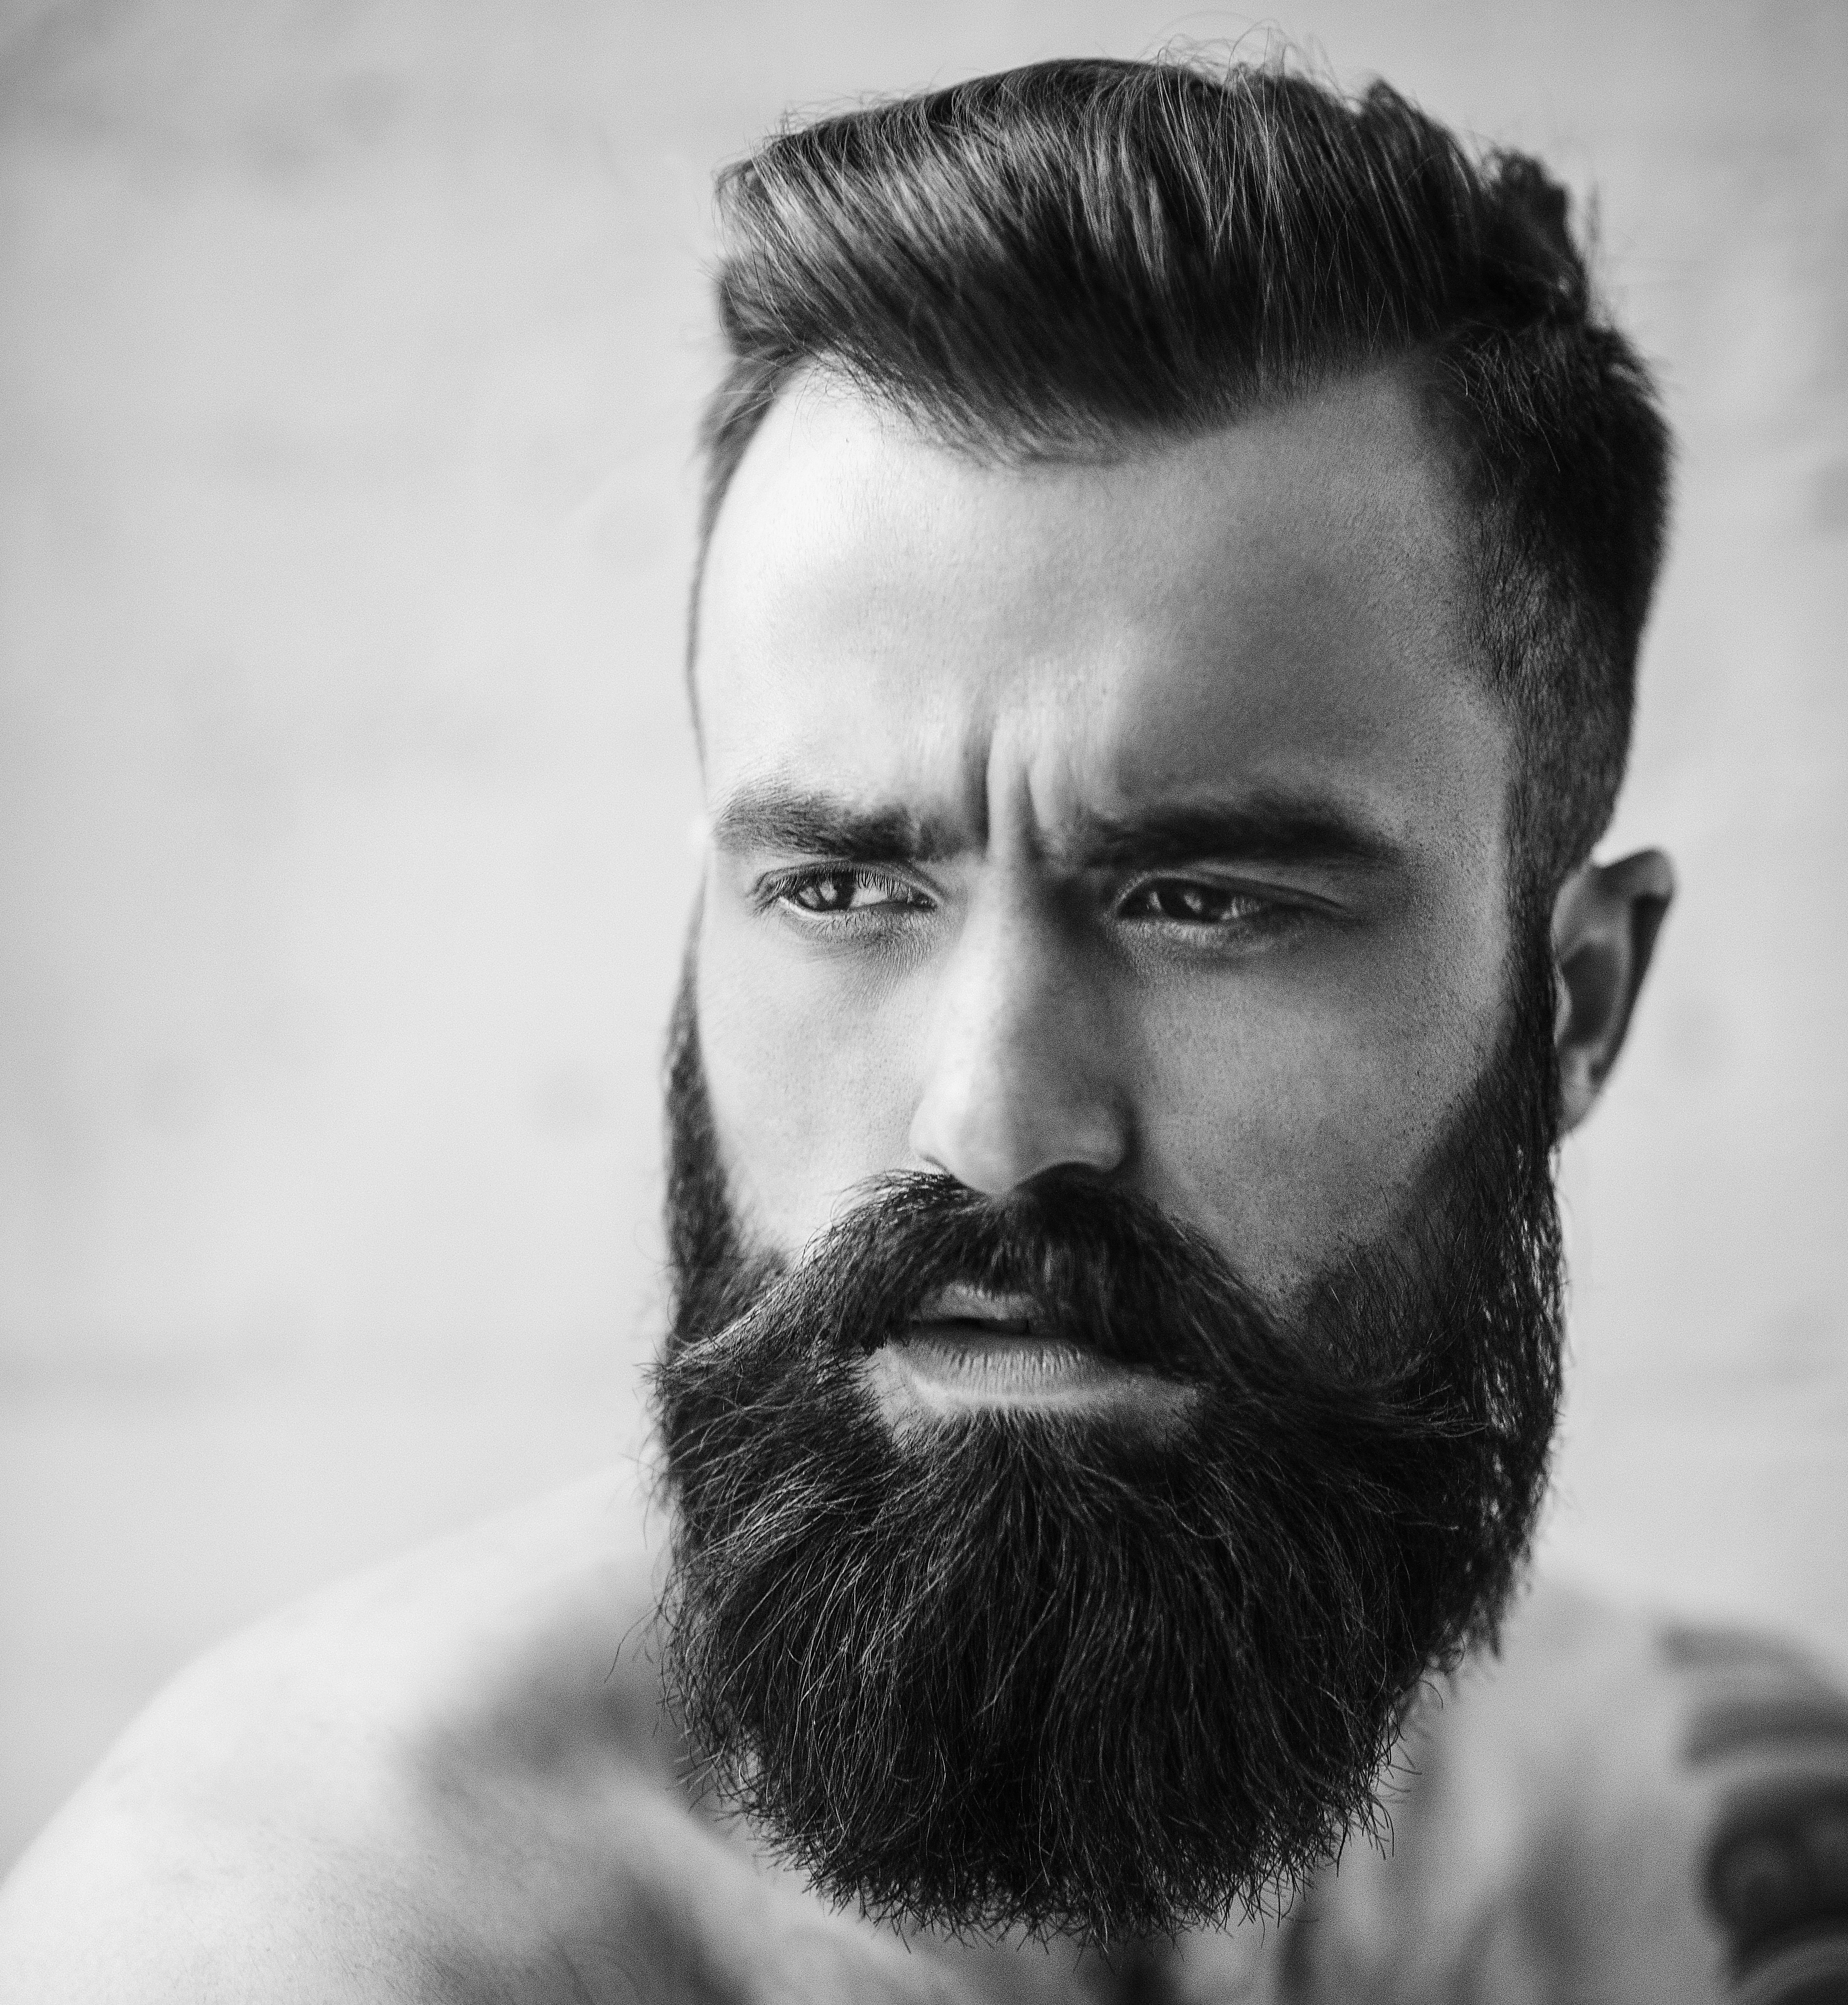 4 INGREDIENTS TO AVOID IN BEARD GROOMING PRODUCTS